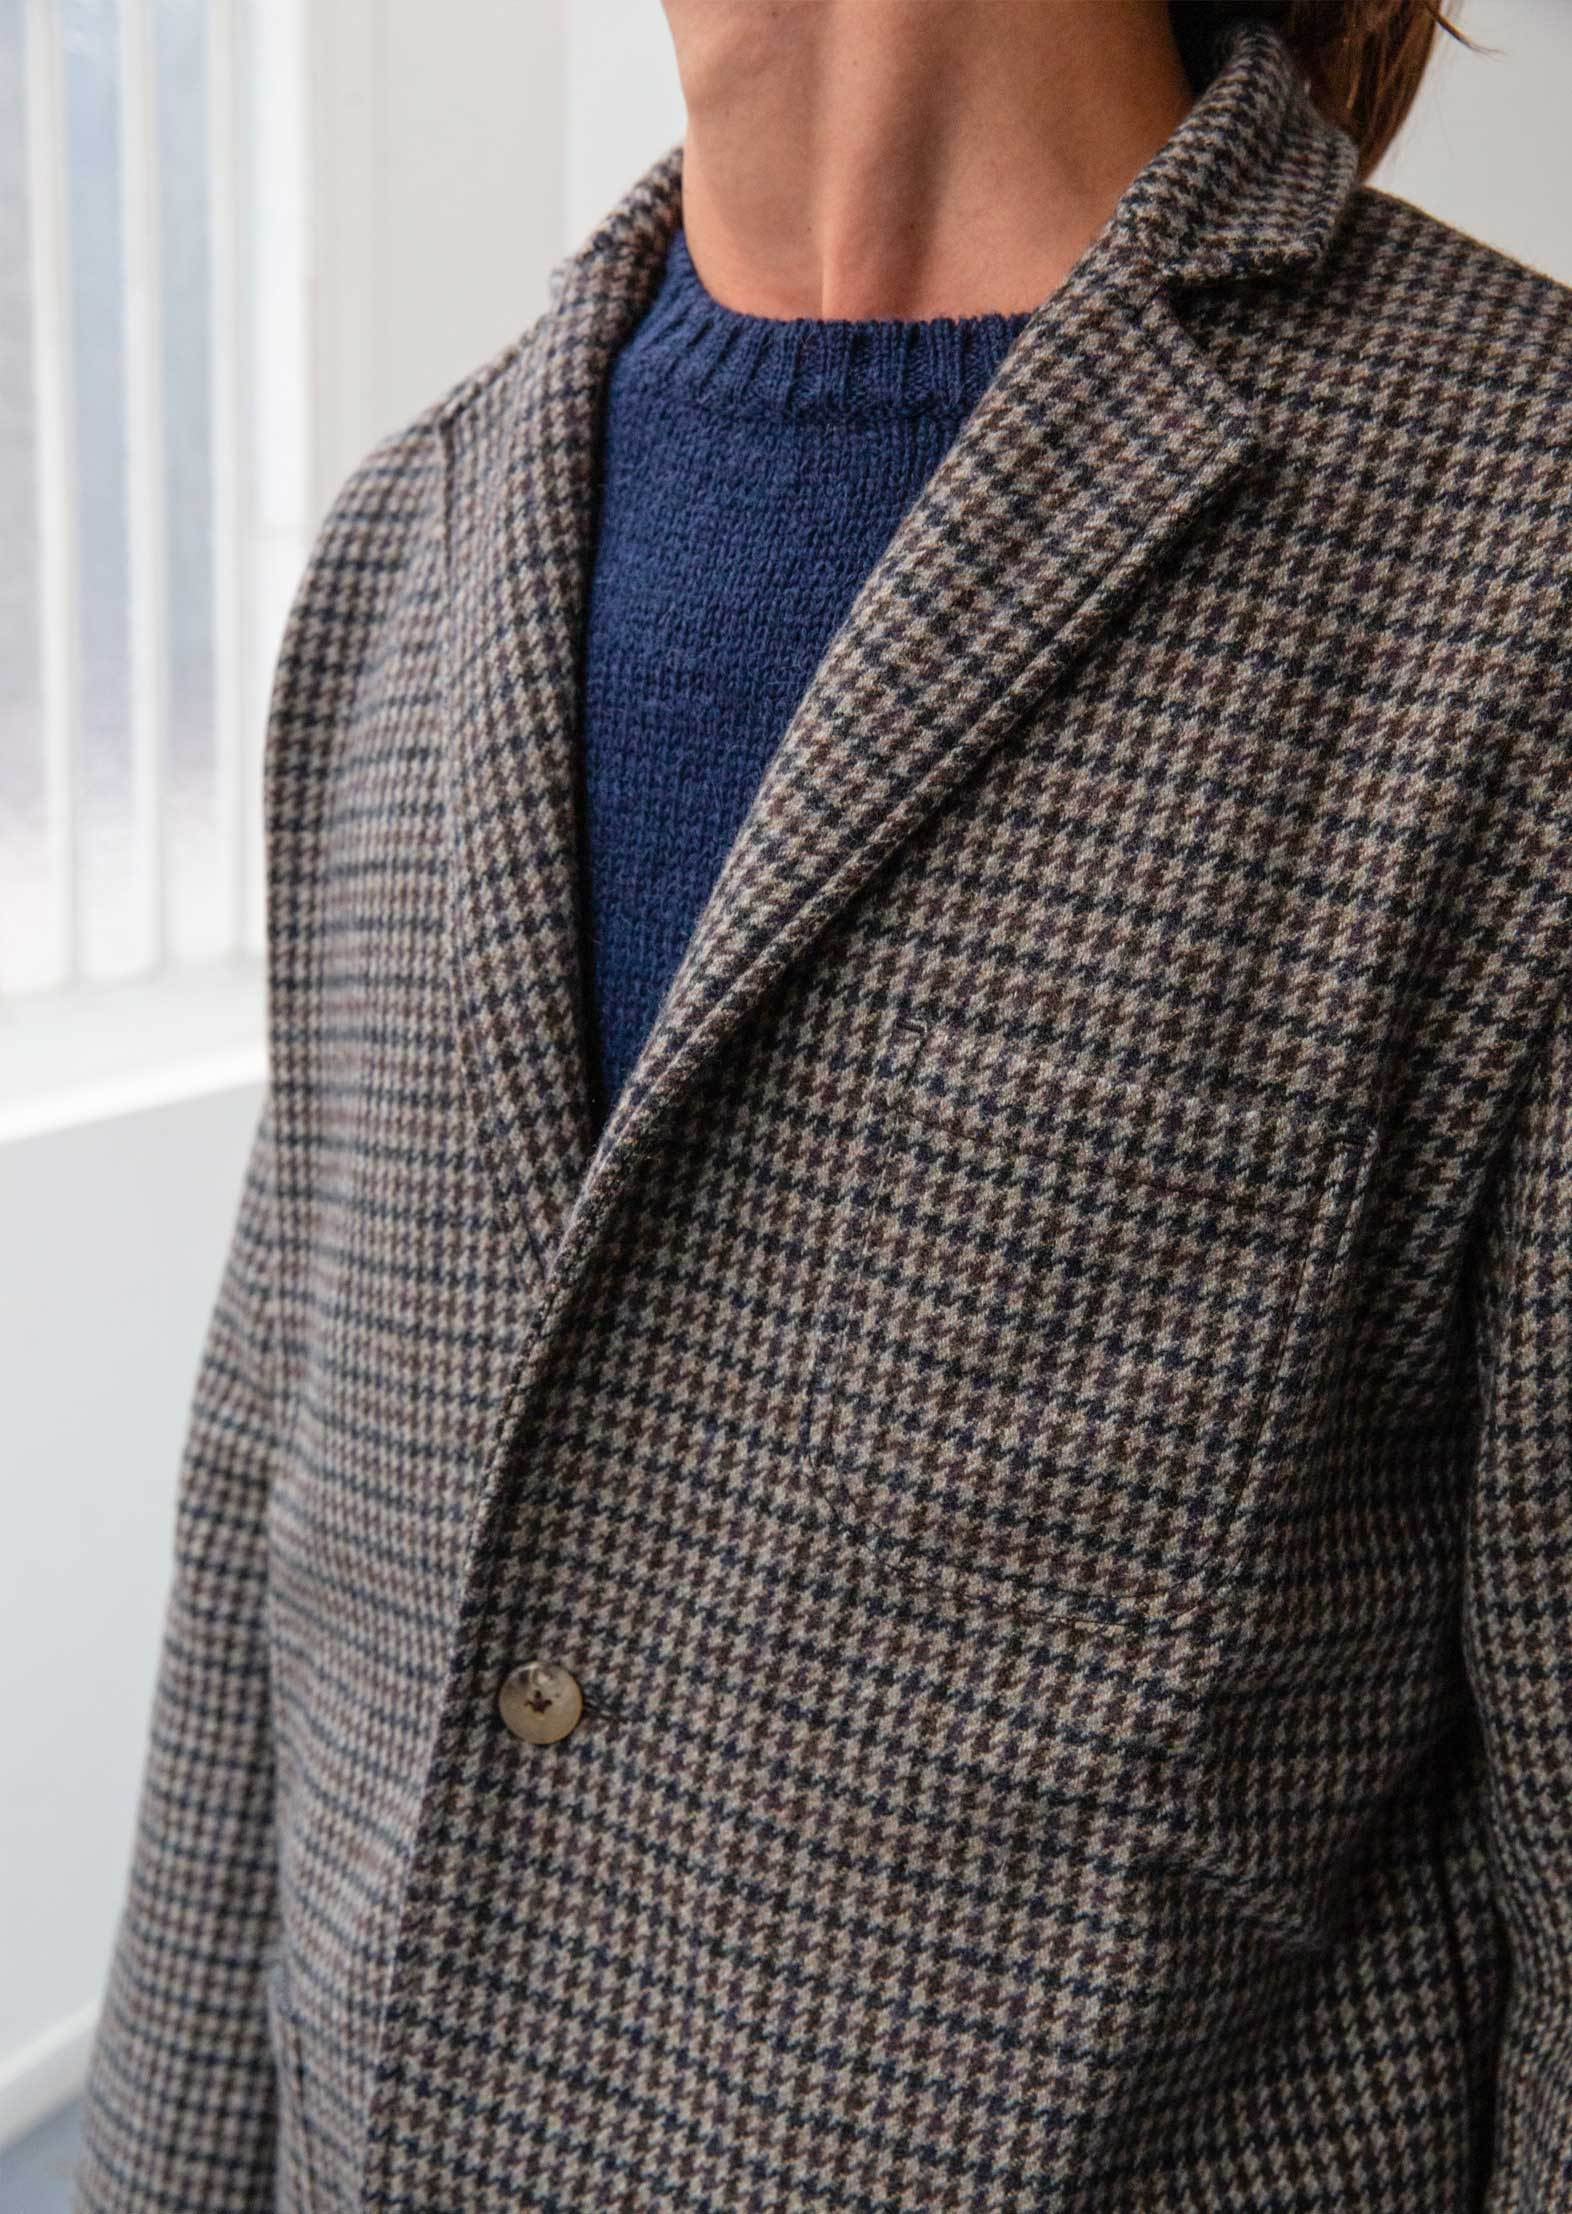 De Bonne Facture - Relaxed jacket - Soft recycled wool - Brown & Navy houndstooth